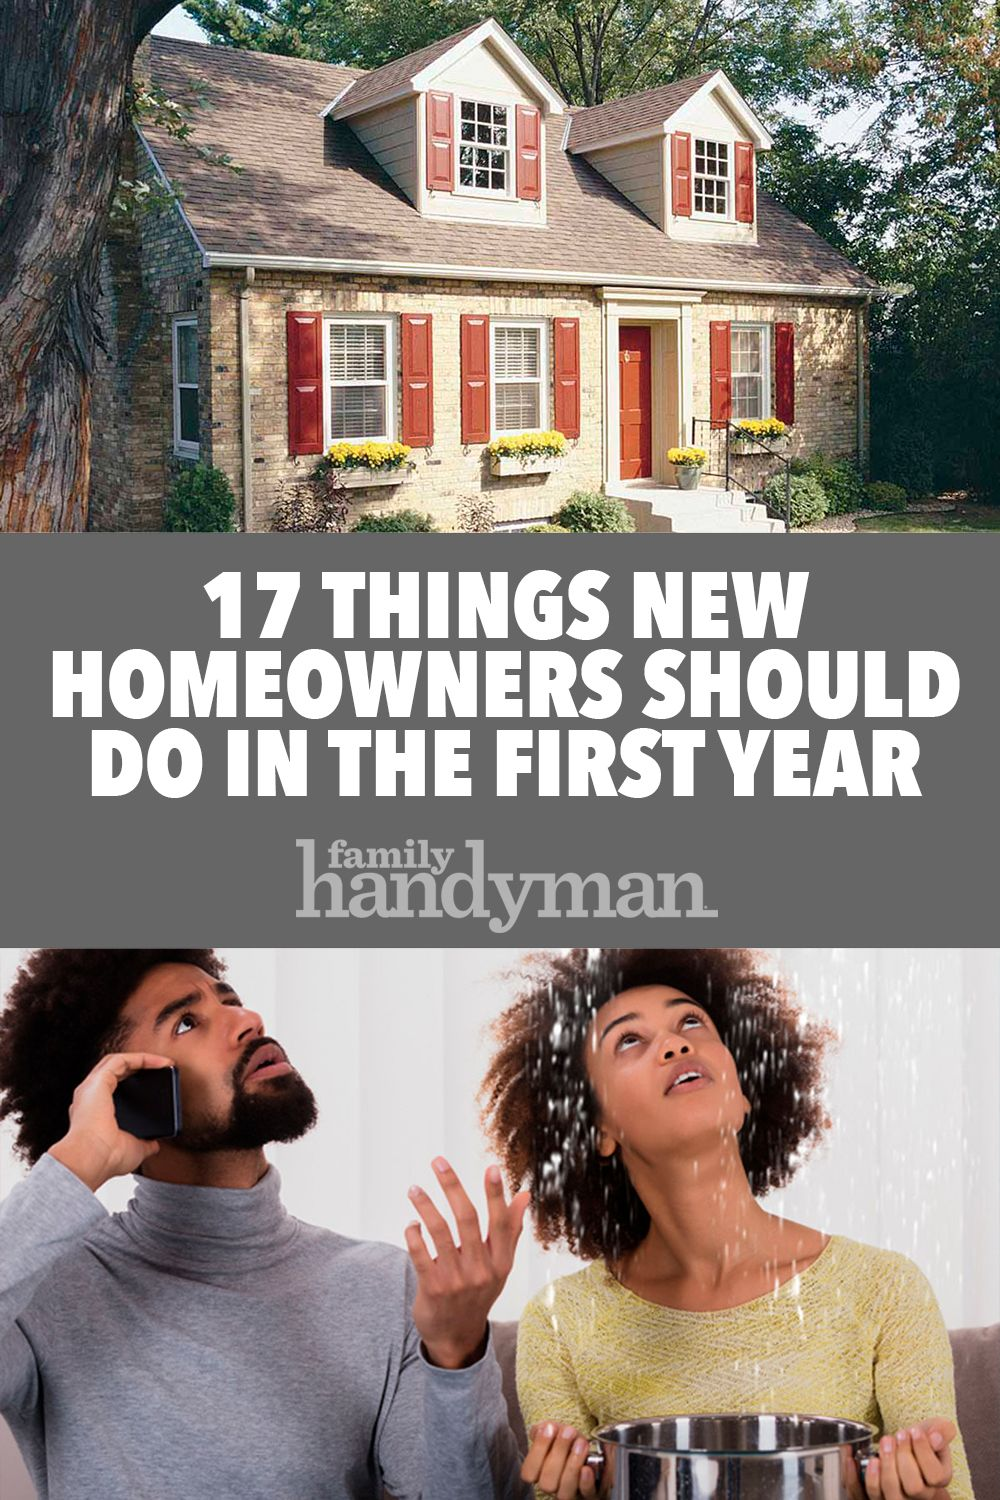 17 things new homeowners should do in the first year | new